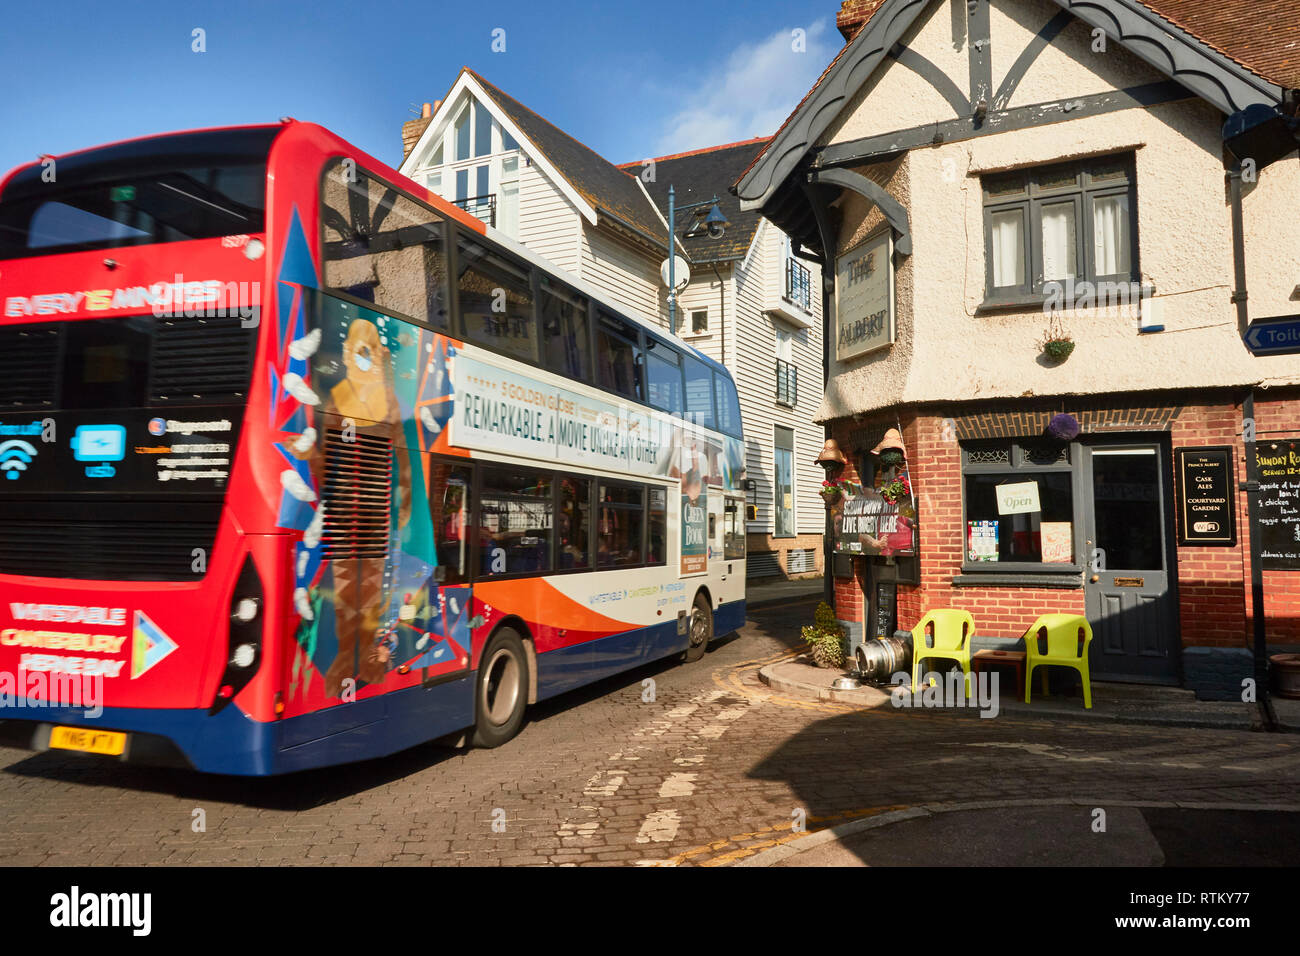 Colourful Canterbury bus driving through Whitstable street, Kent, England, United Kingdom - Stock Image